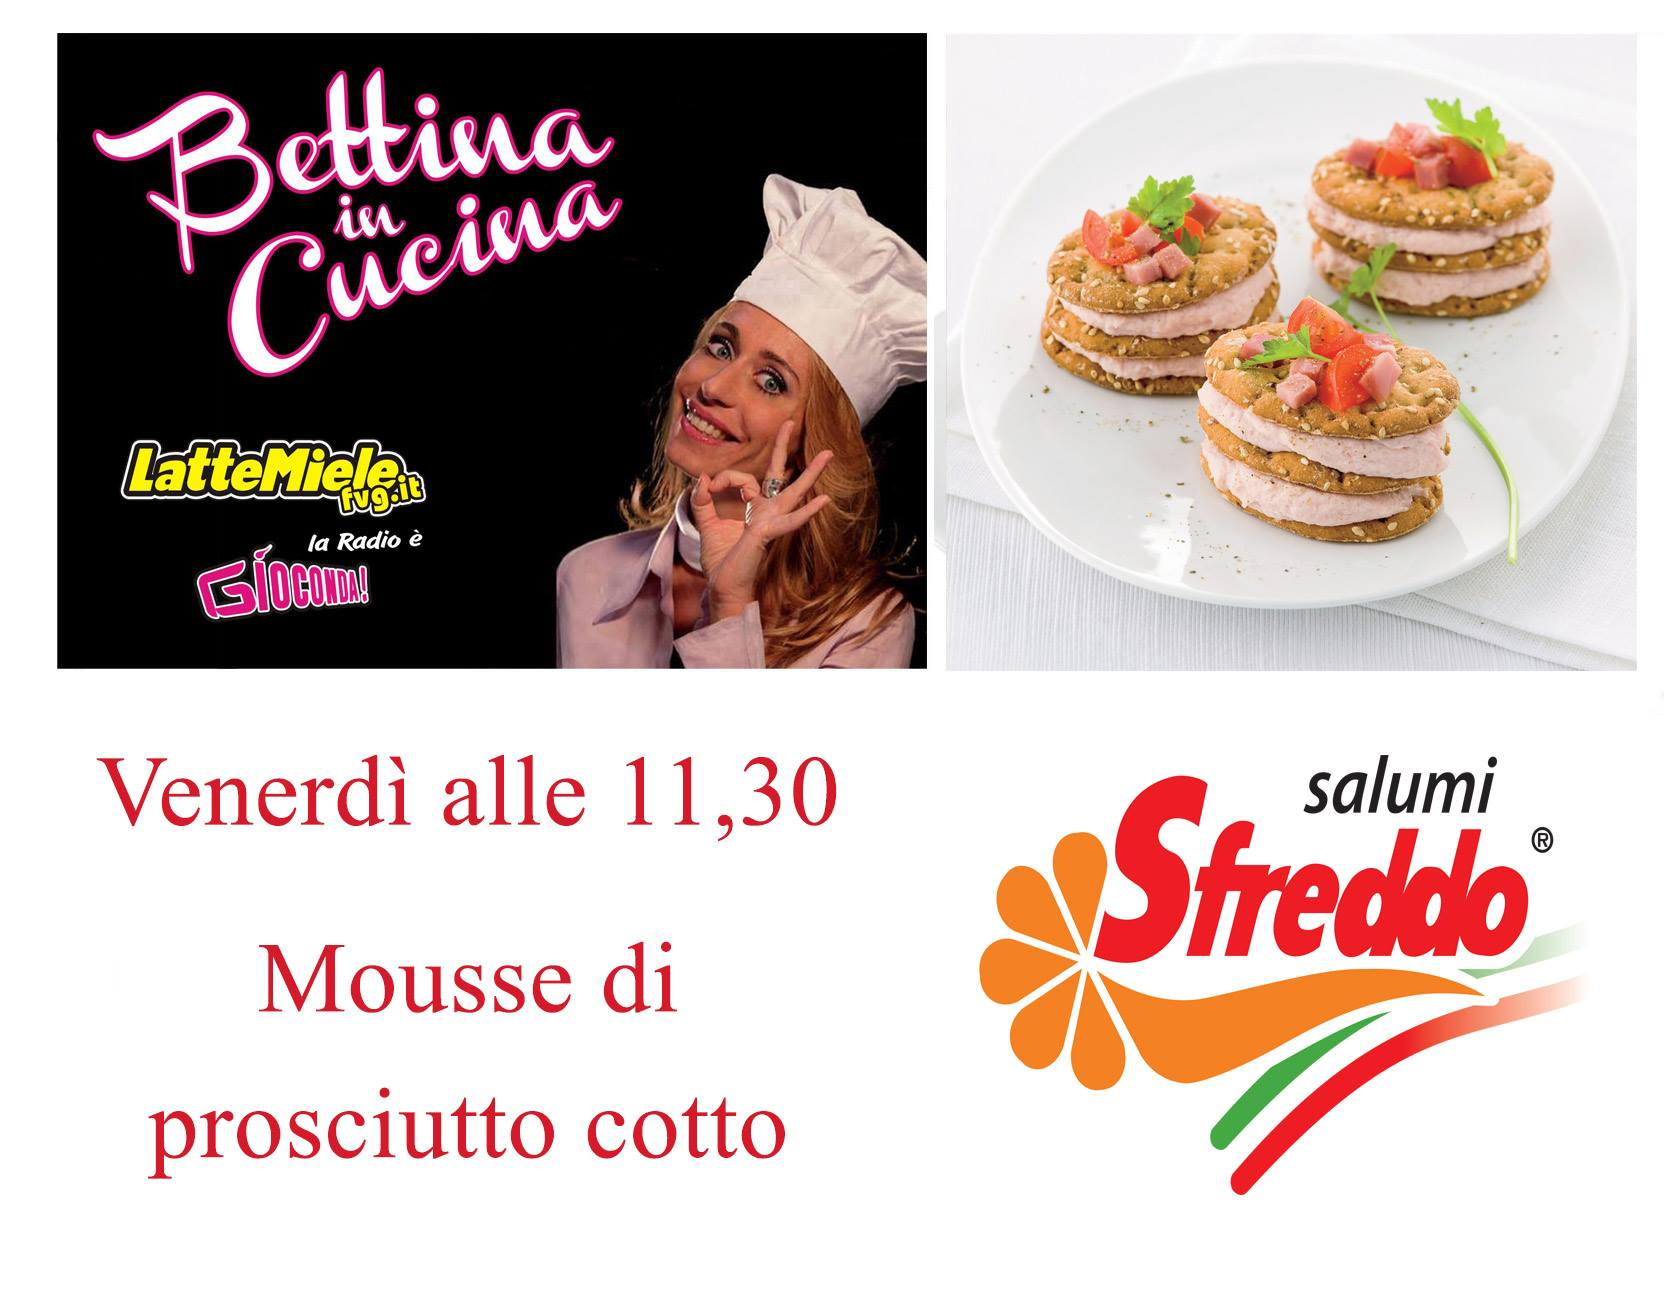 Bettina in Cucina con la Salumeria Sfreddo